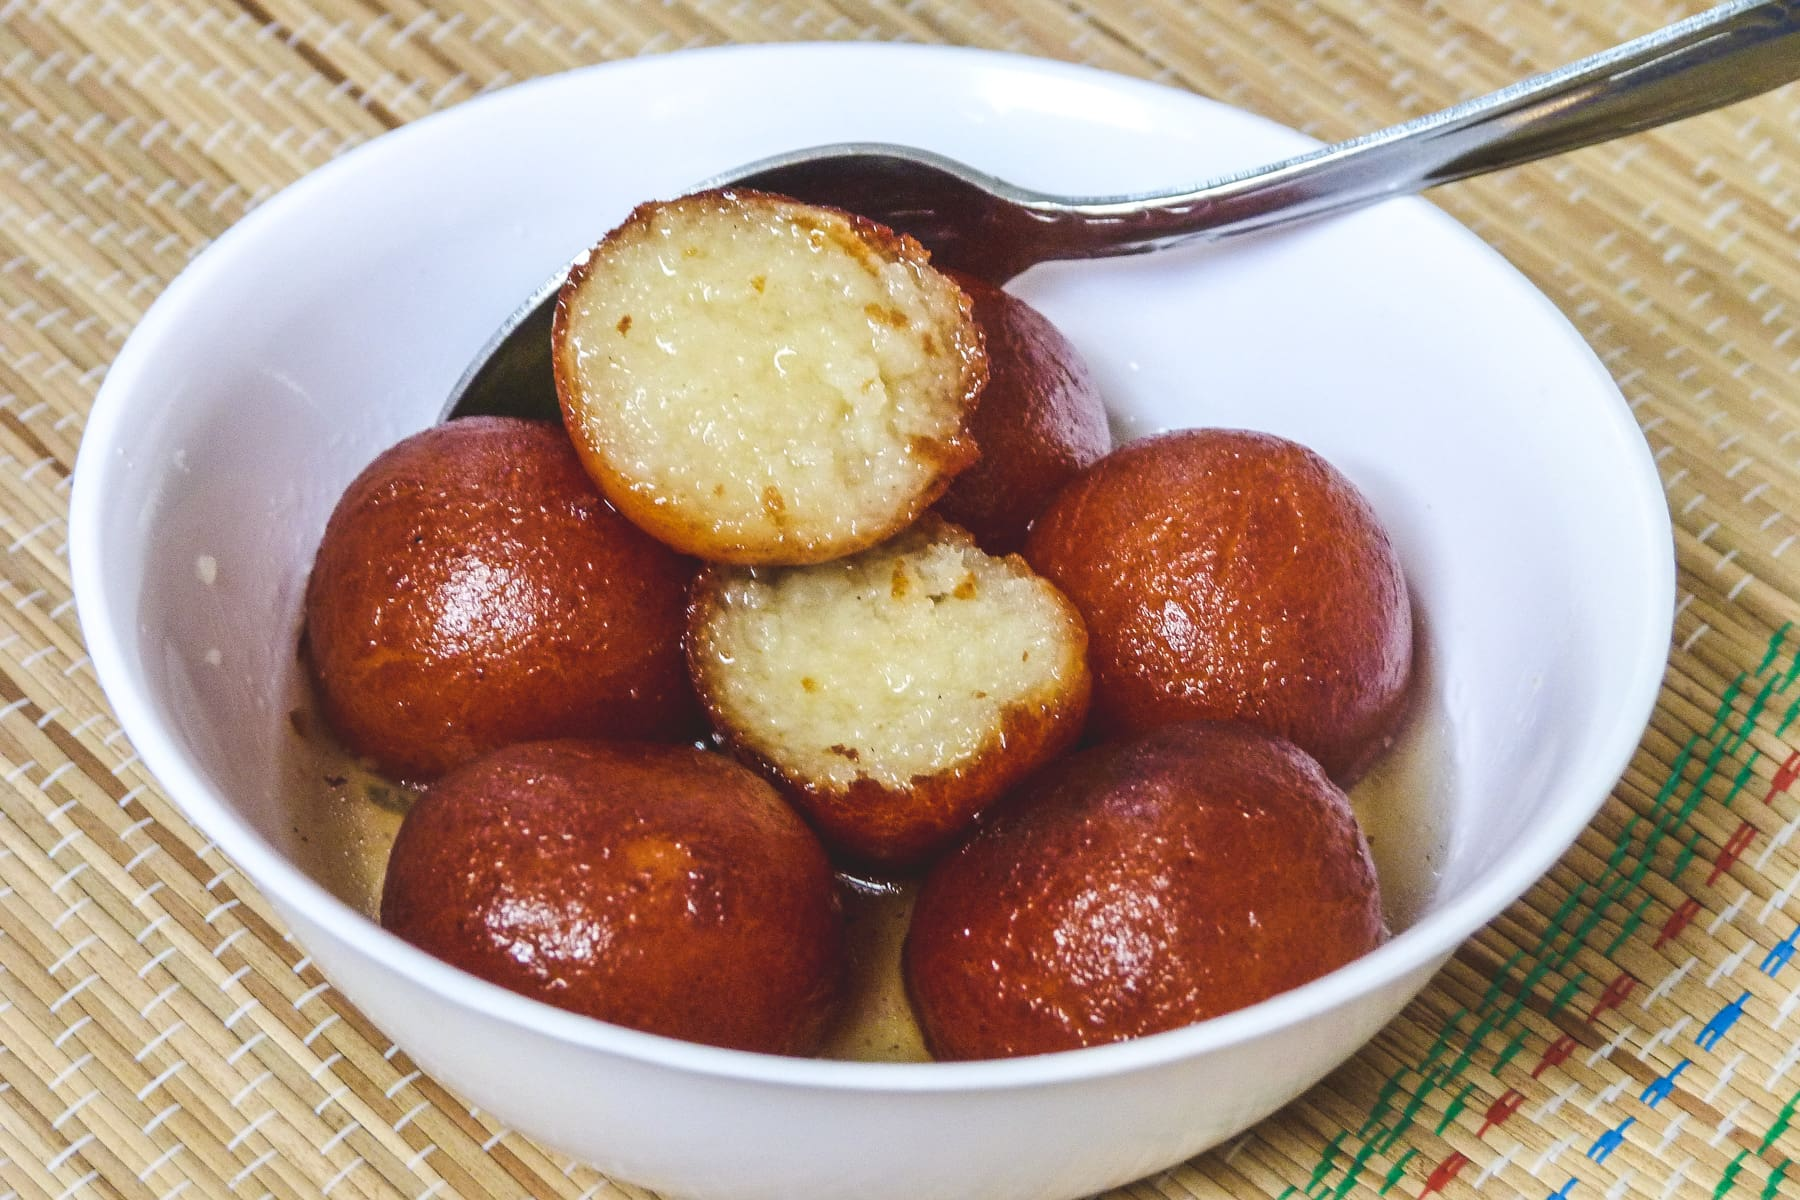 Gulab jamun in a bowl with one jamun cut open with a spoon